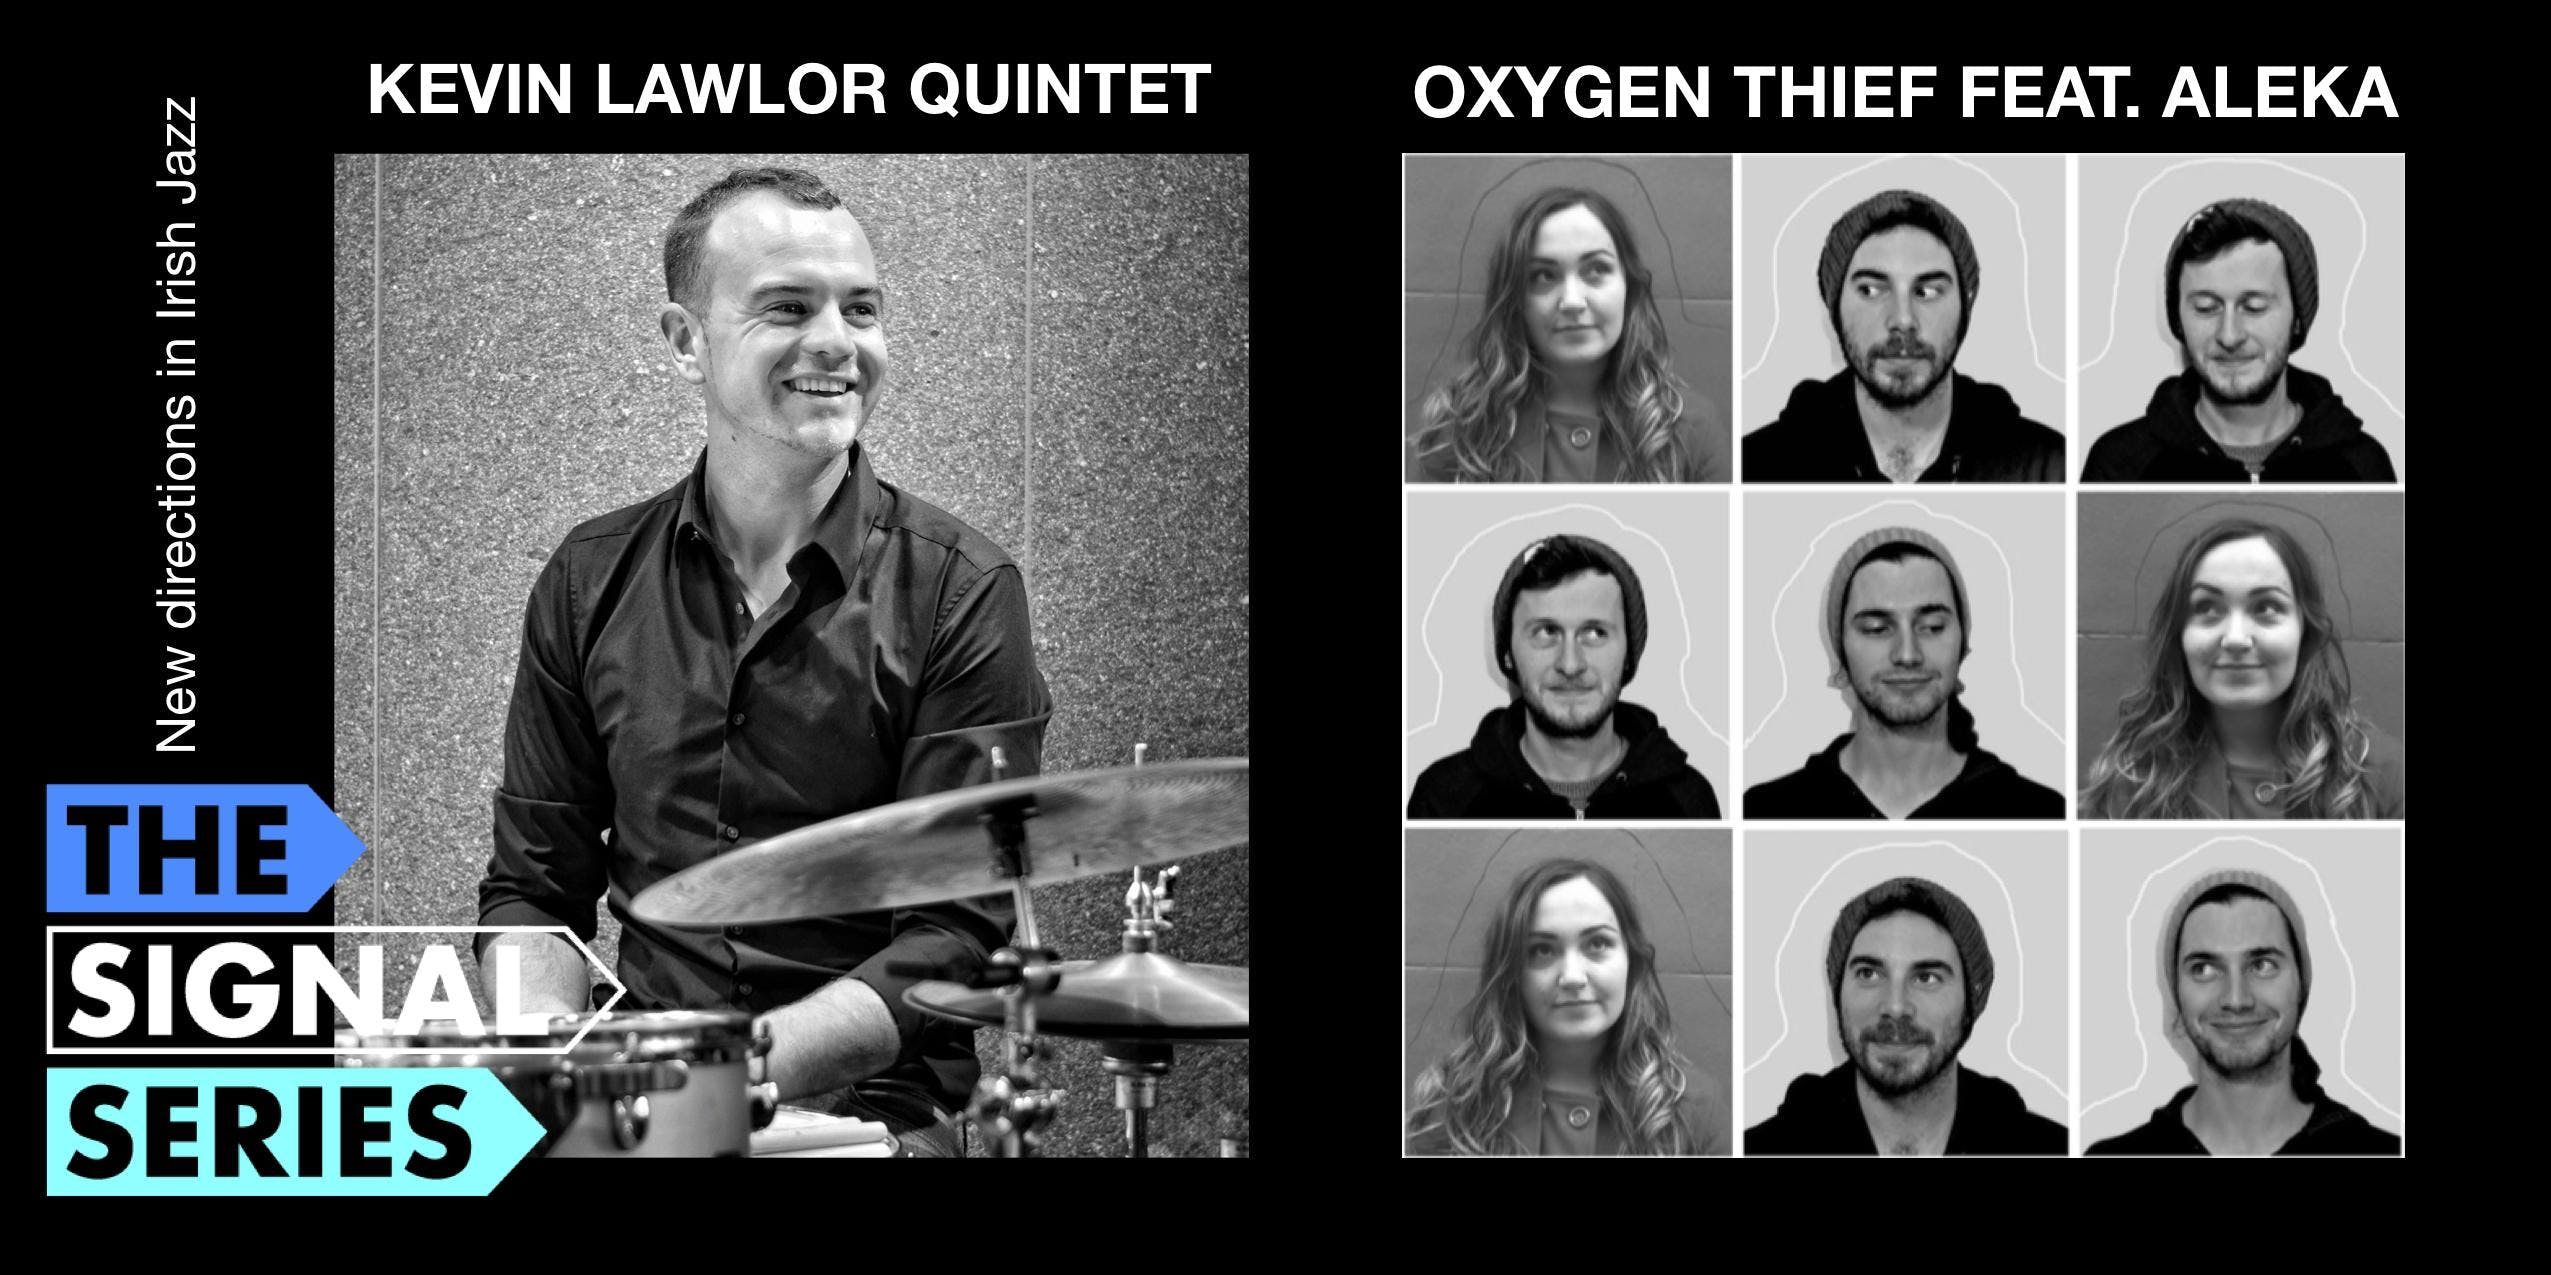 Signal Series March - Oxygen Thief feat. Aleka | Kevin Lawlor Quintet